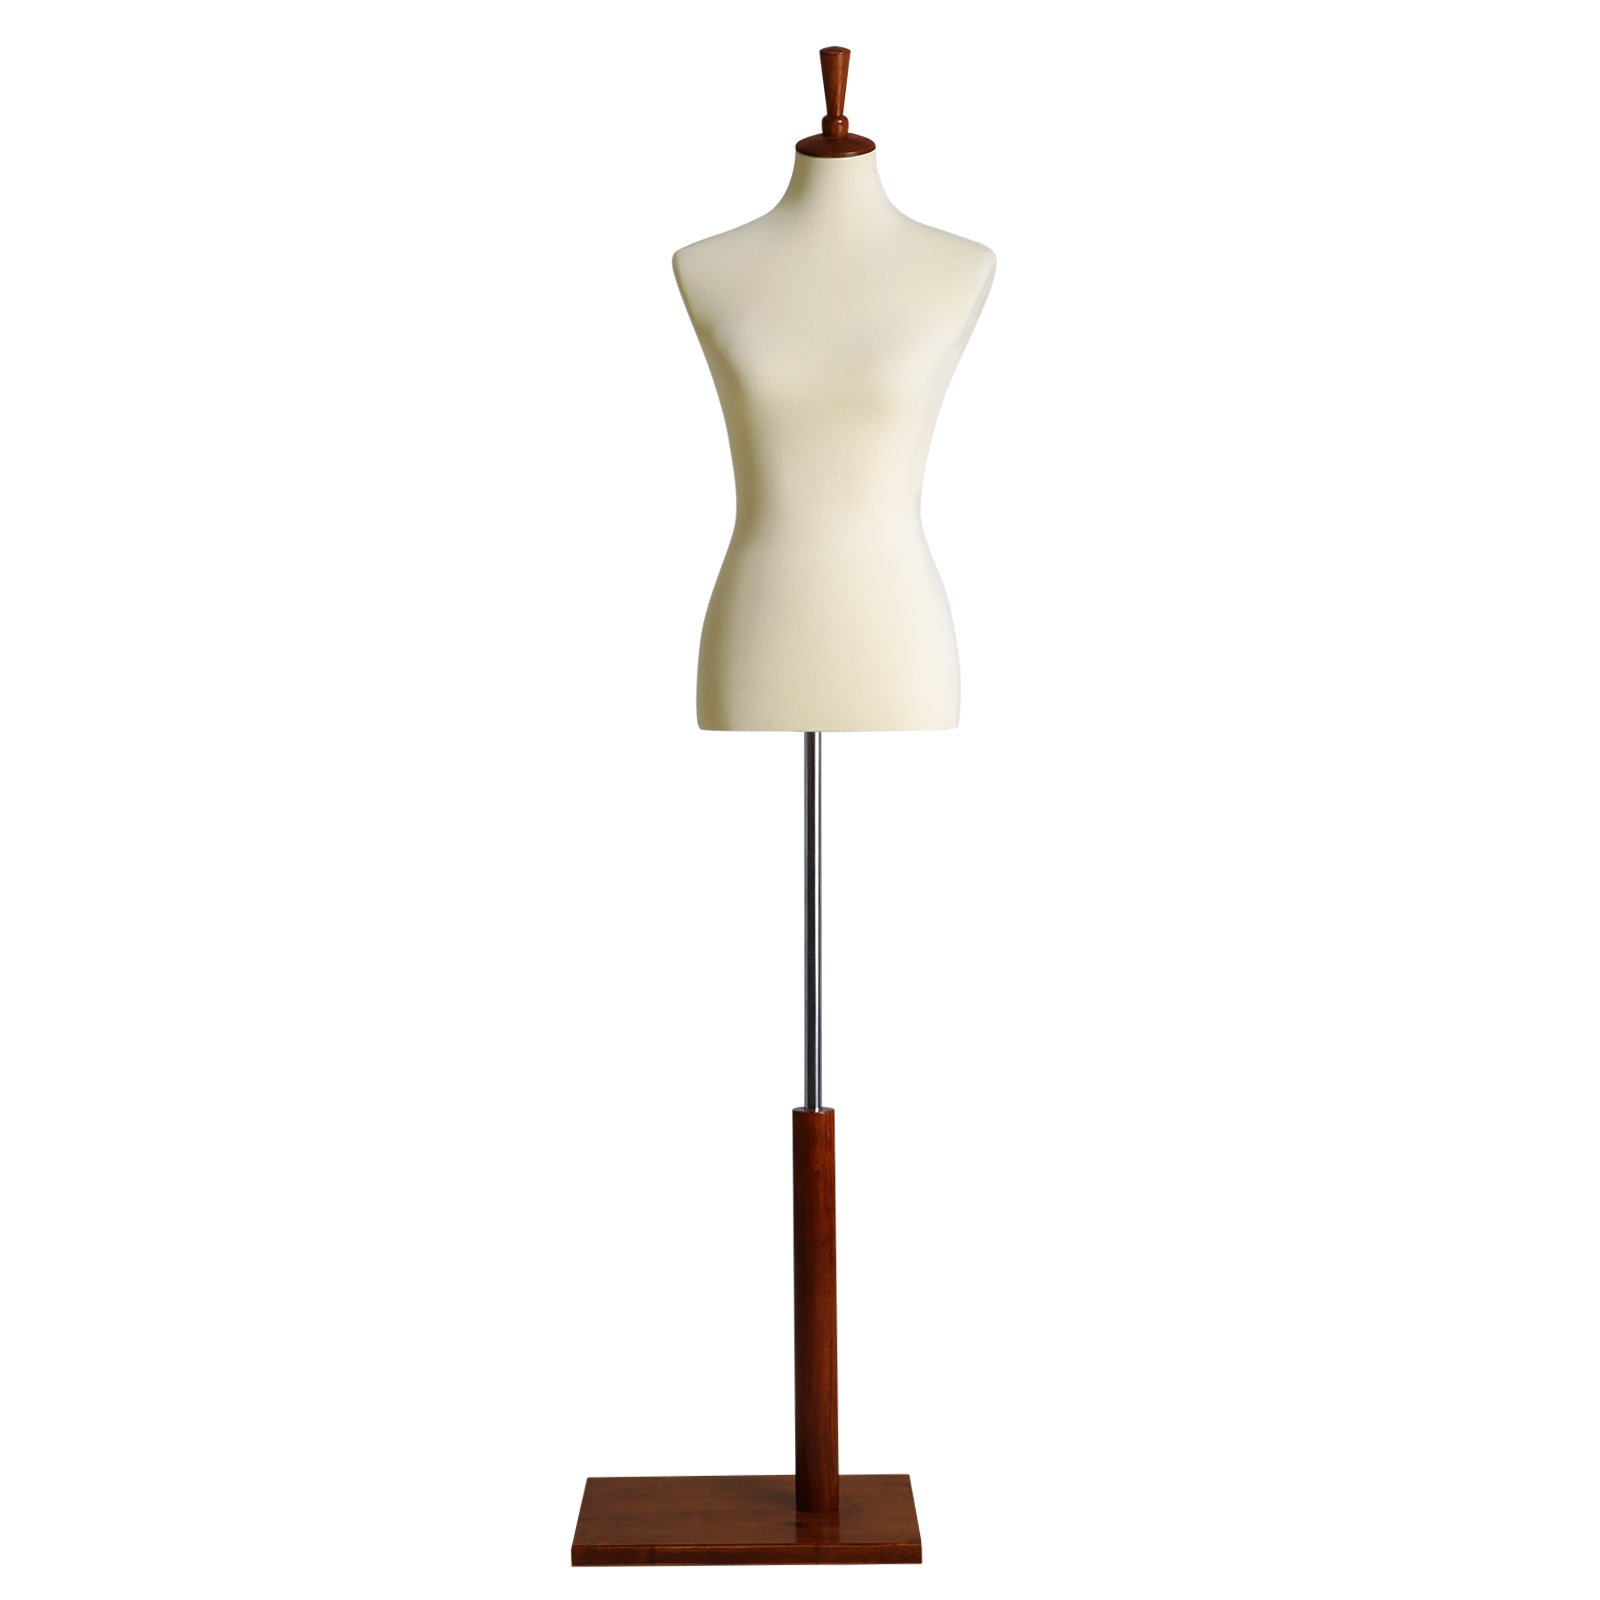 SONGMICS Female Mannequin Torso Body Dress Form with Tripod Stand, Medium Size 6-8, 34'' 26'' 35'', Non-Straight Pinnable, Adjustable Height, for Dress Clothing Display Beige UMDF03BE by SONGMICS